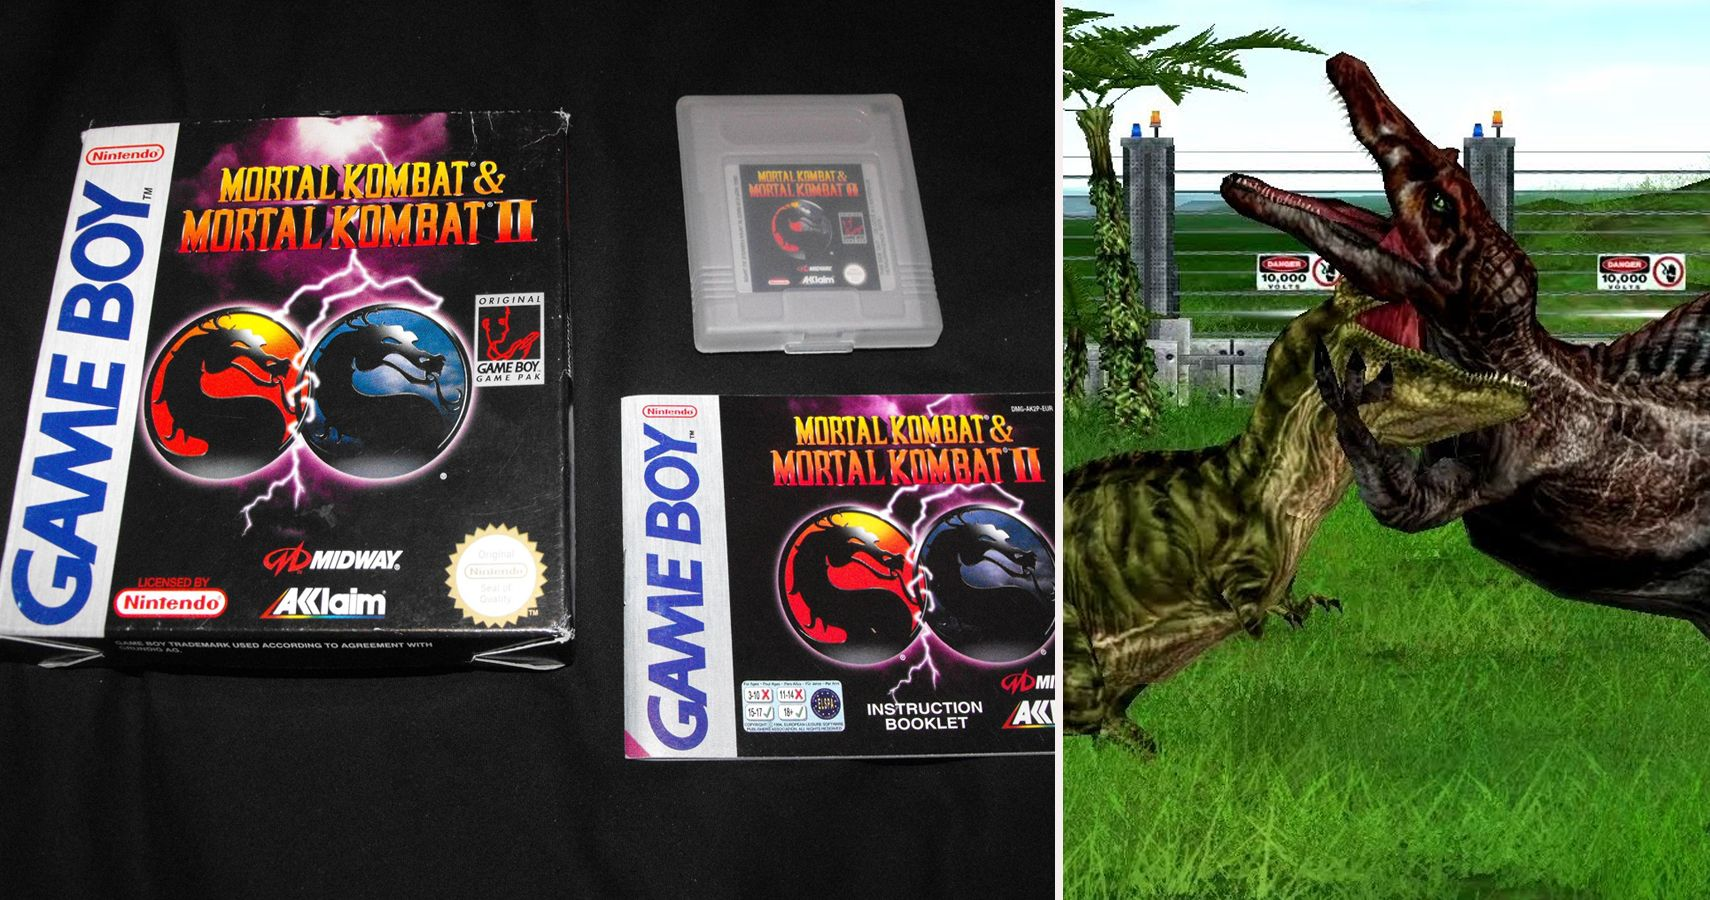 The 30 Rarest Video Games Ever (And How Much They're Worth)